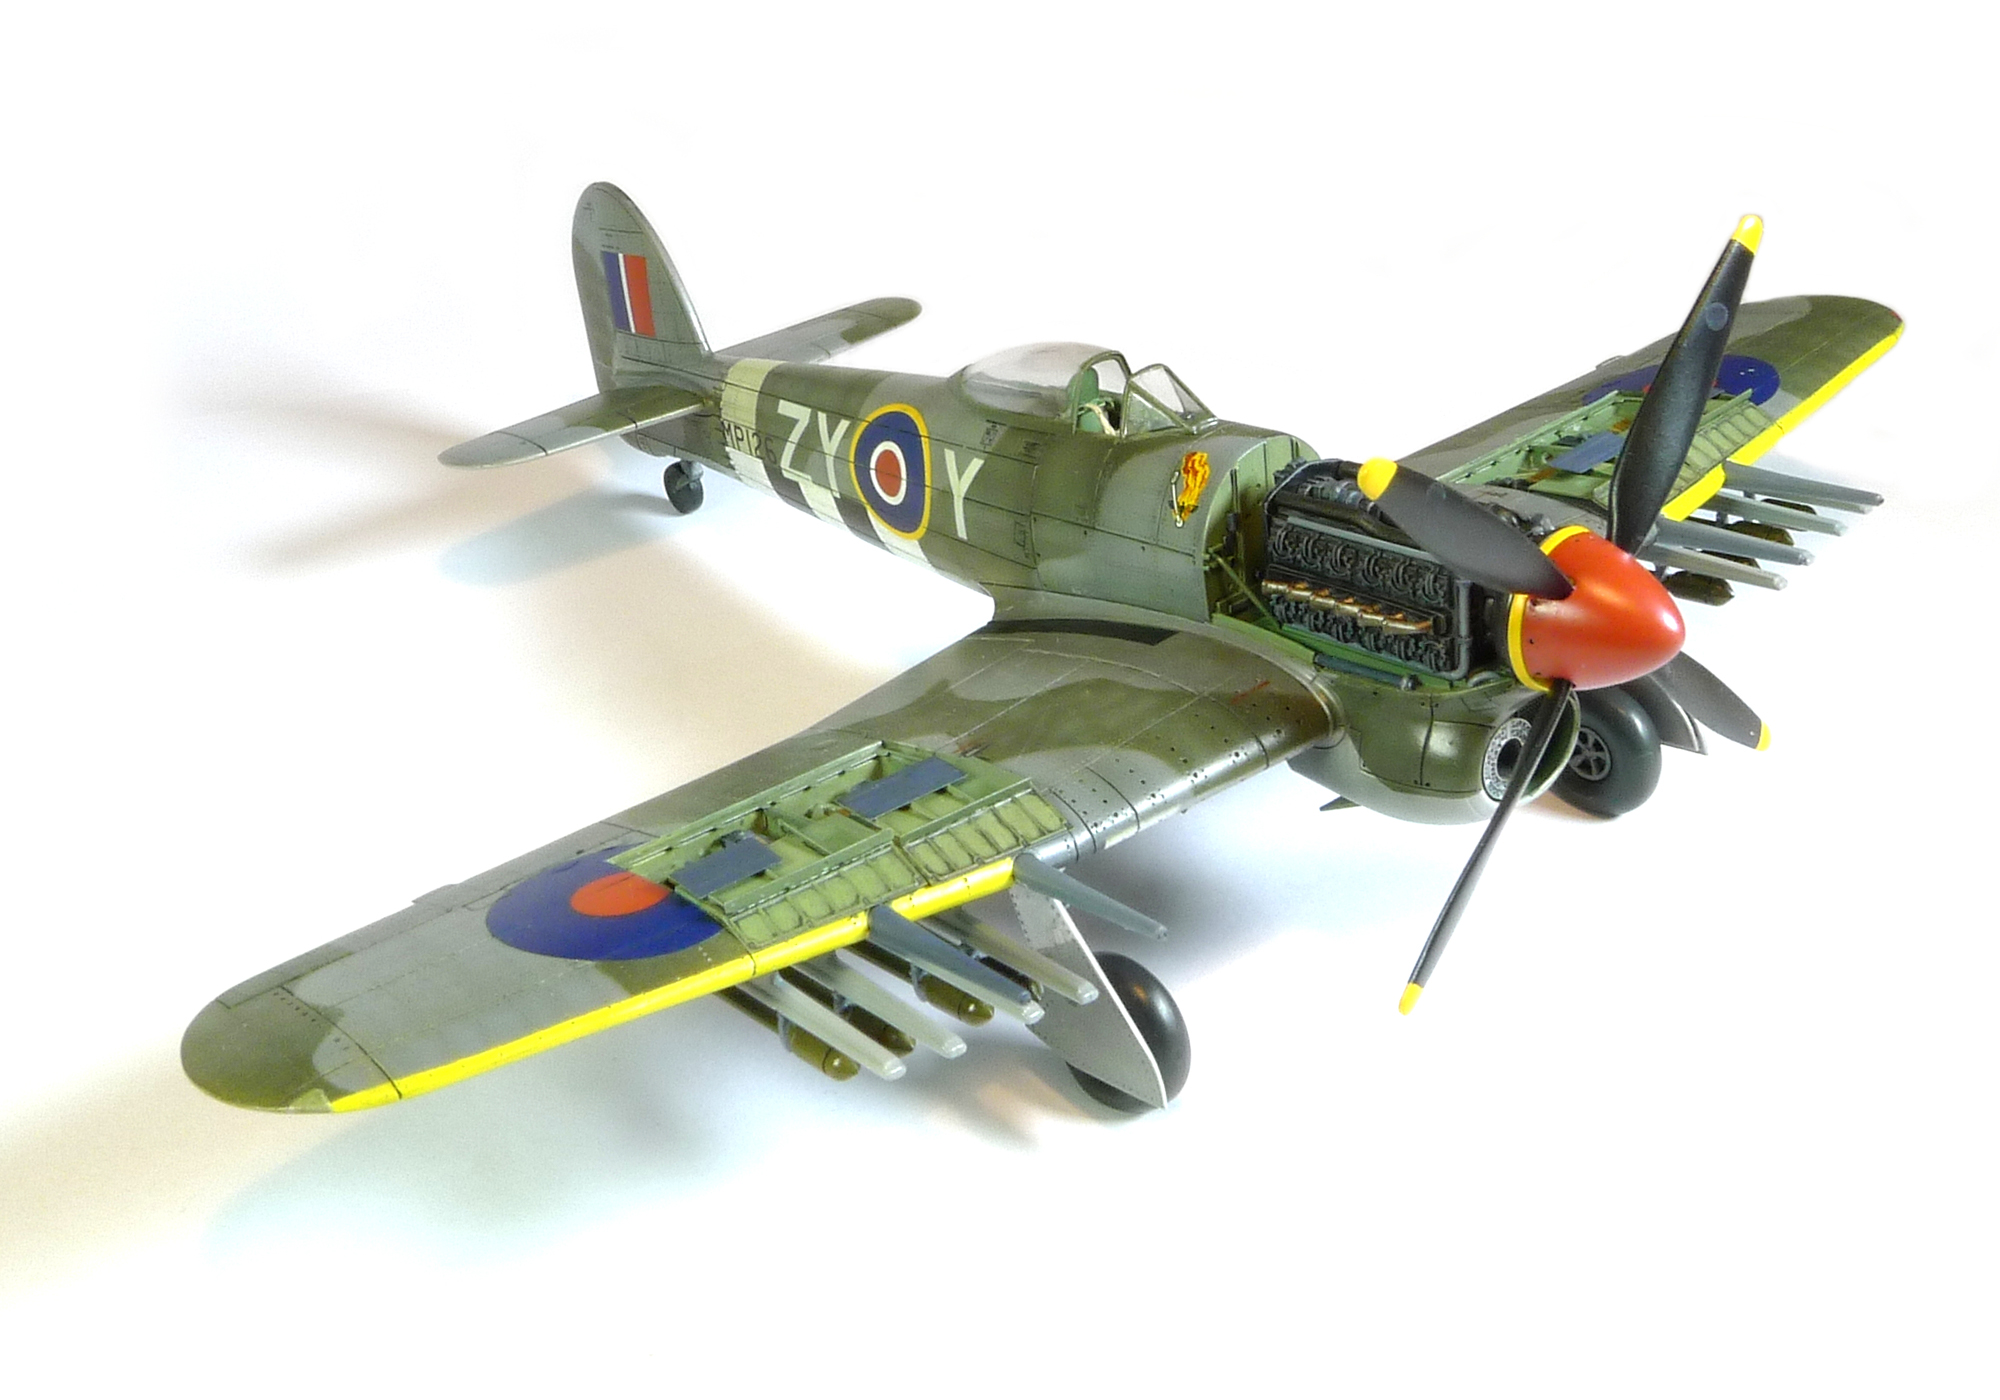 HAWKER TYPHOON IB - AIRFIX 1/72 scale